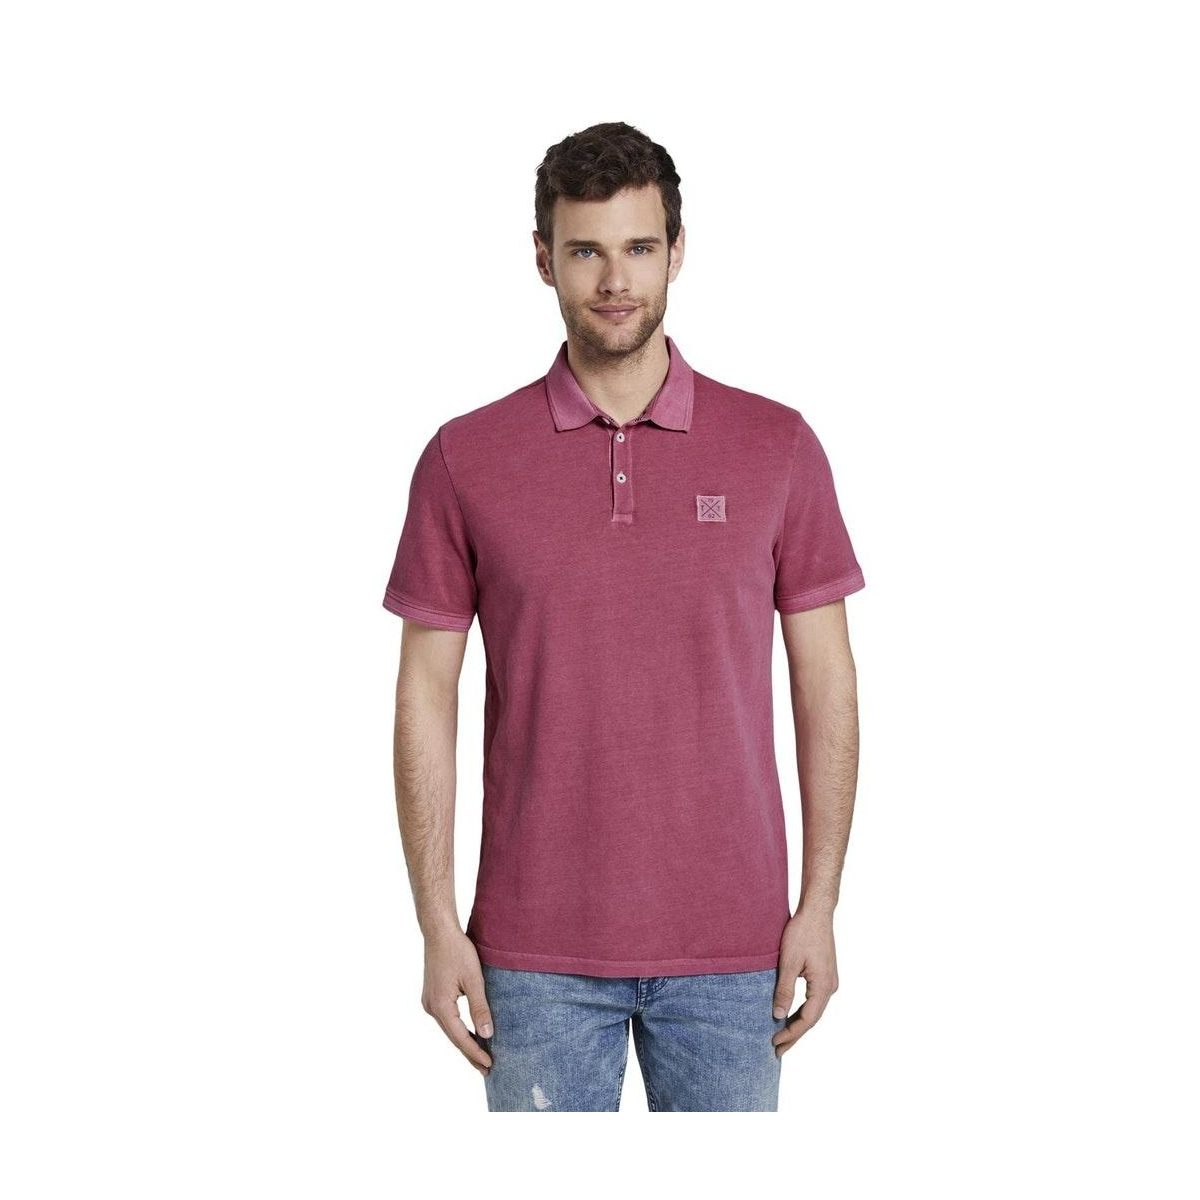 polo shirt met logo patch 1018853xx10 tom tailor polo 21181